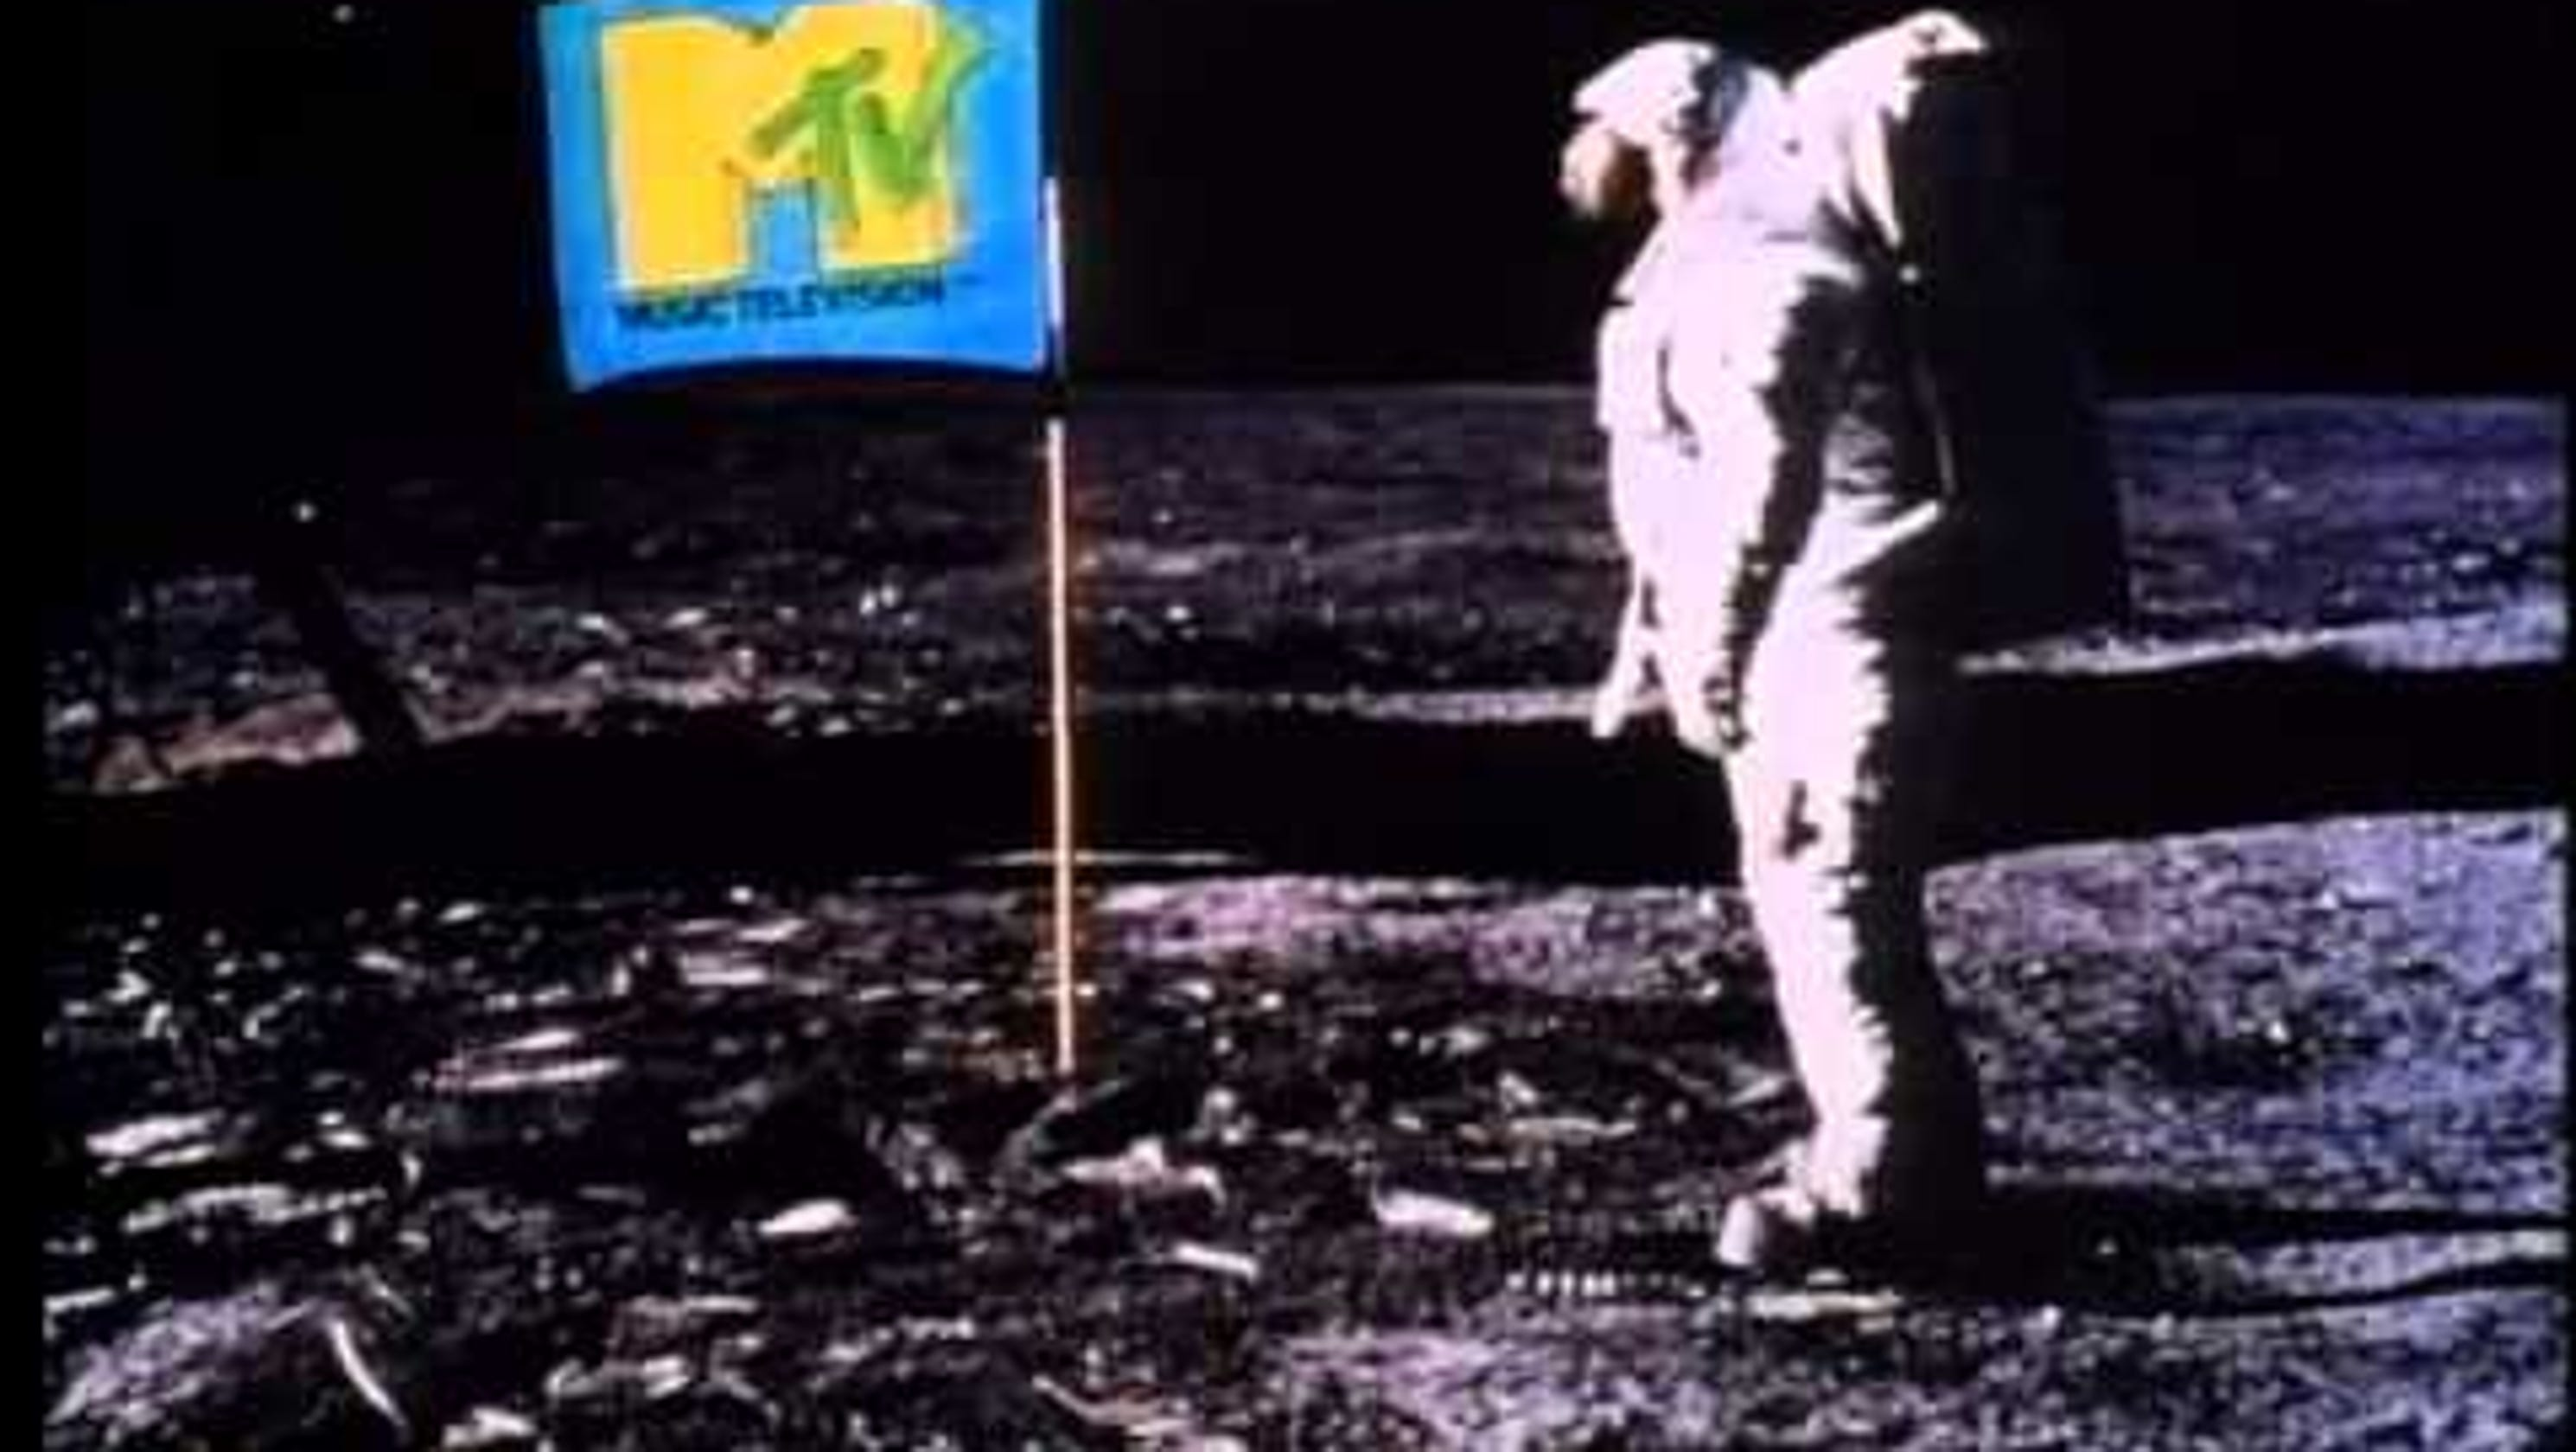 Today in History, August 1, 1981: MTV music video channel was launched